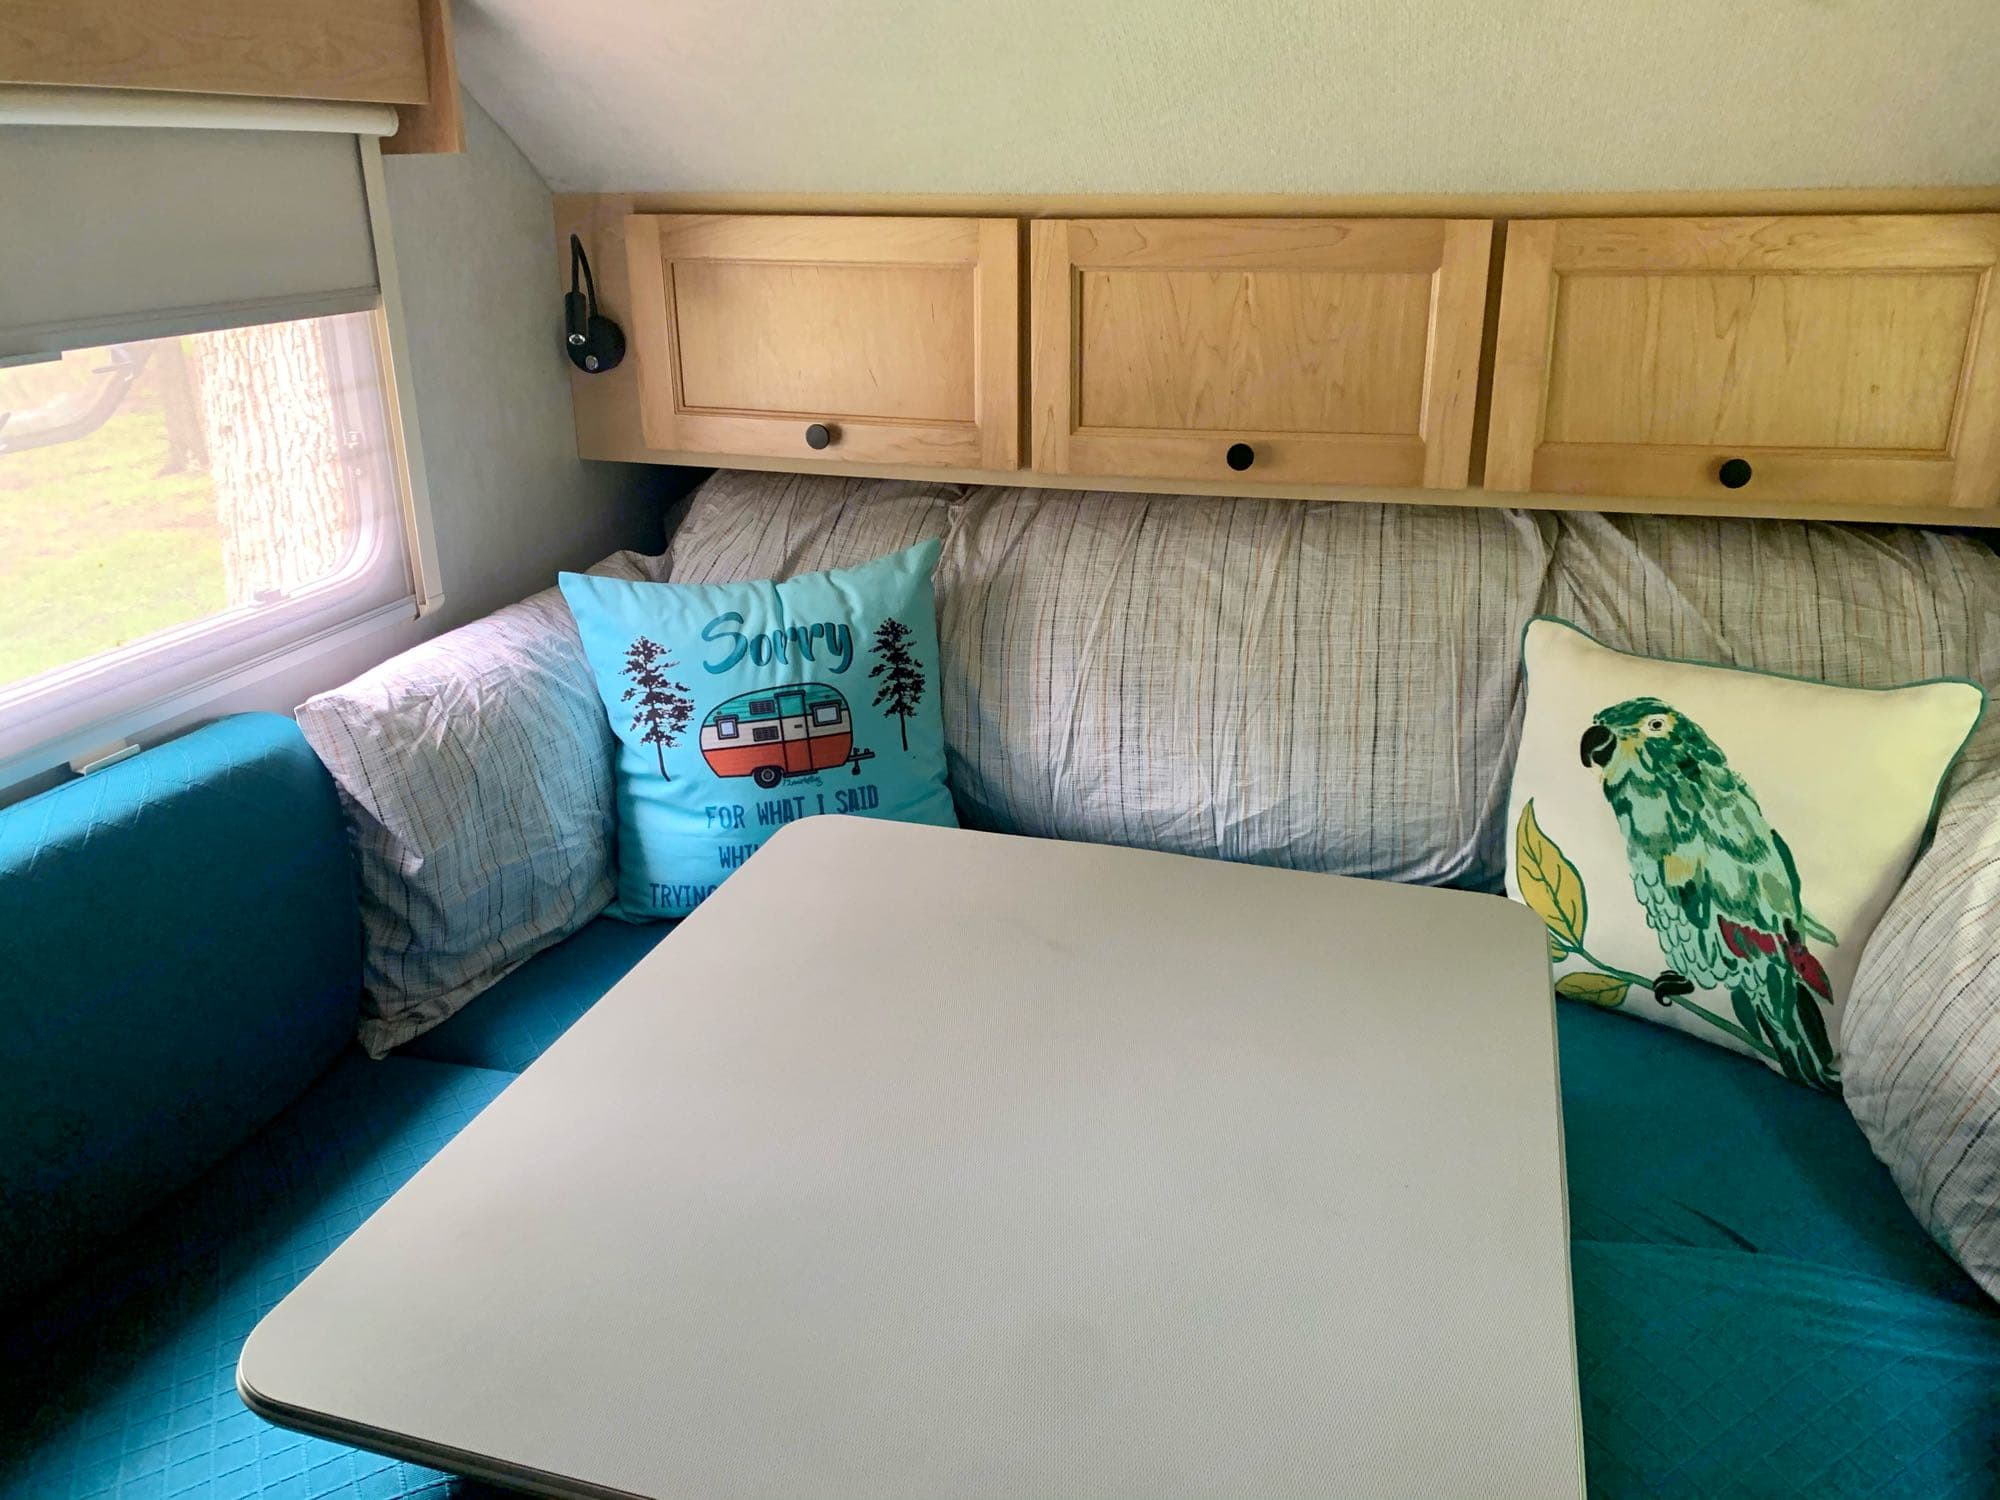 """Converts to an oversized queen bed. 3"""" memory foam topper rolled up under cabinets included w/ duvet cover already on, so makes up in to a bed easily. T@B T16 2008"""